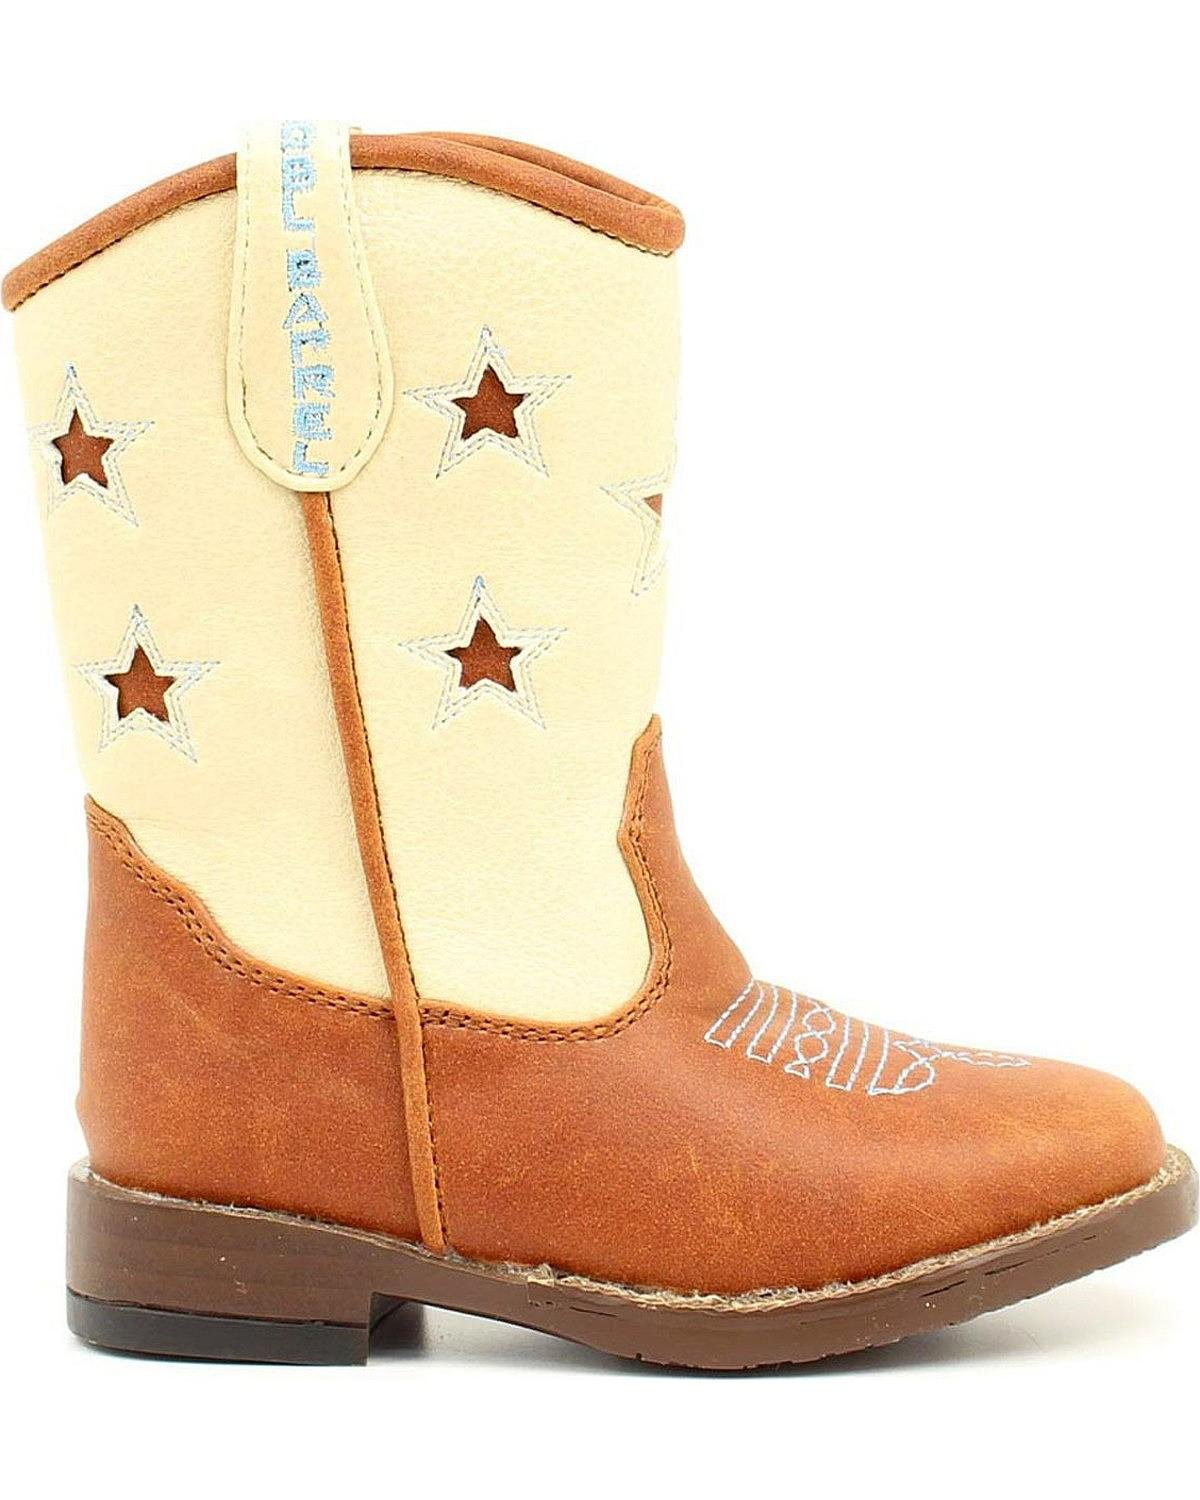 M&F Western Double Barrel Toddler-Boys' Lone Star Inlay Side Zipper Cowboy Boot Square Toe Brown 7 D(M) US